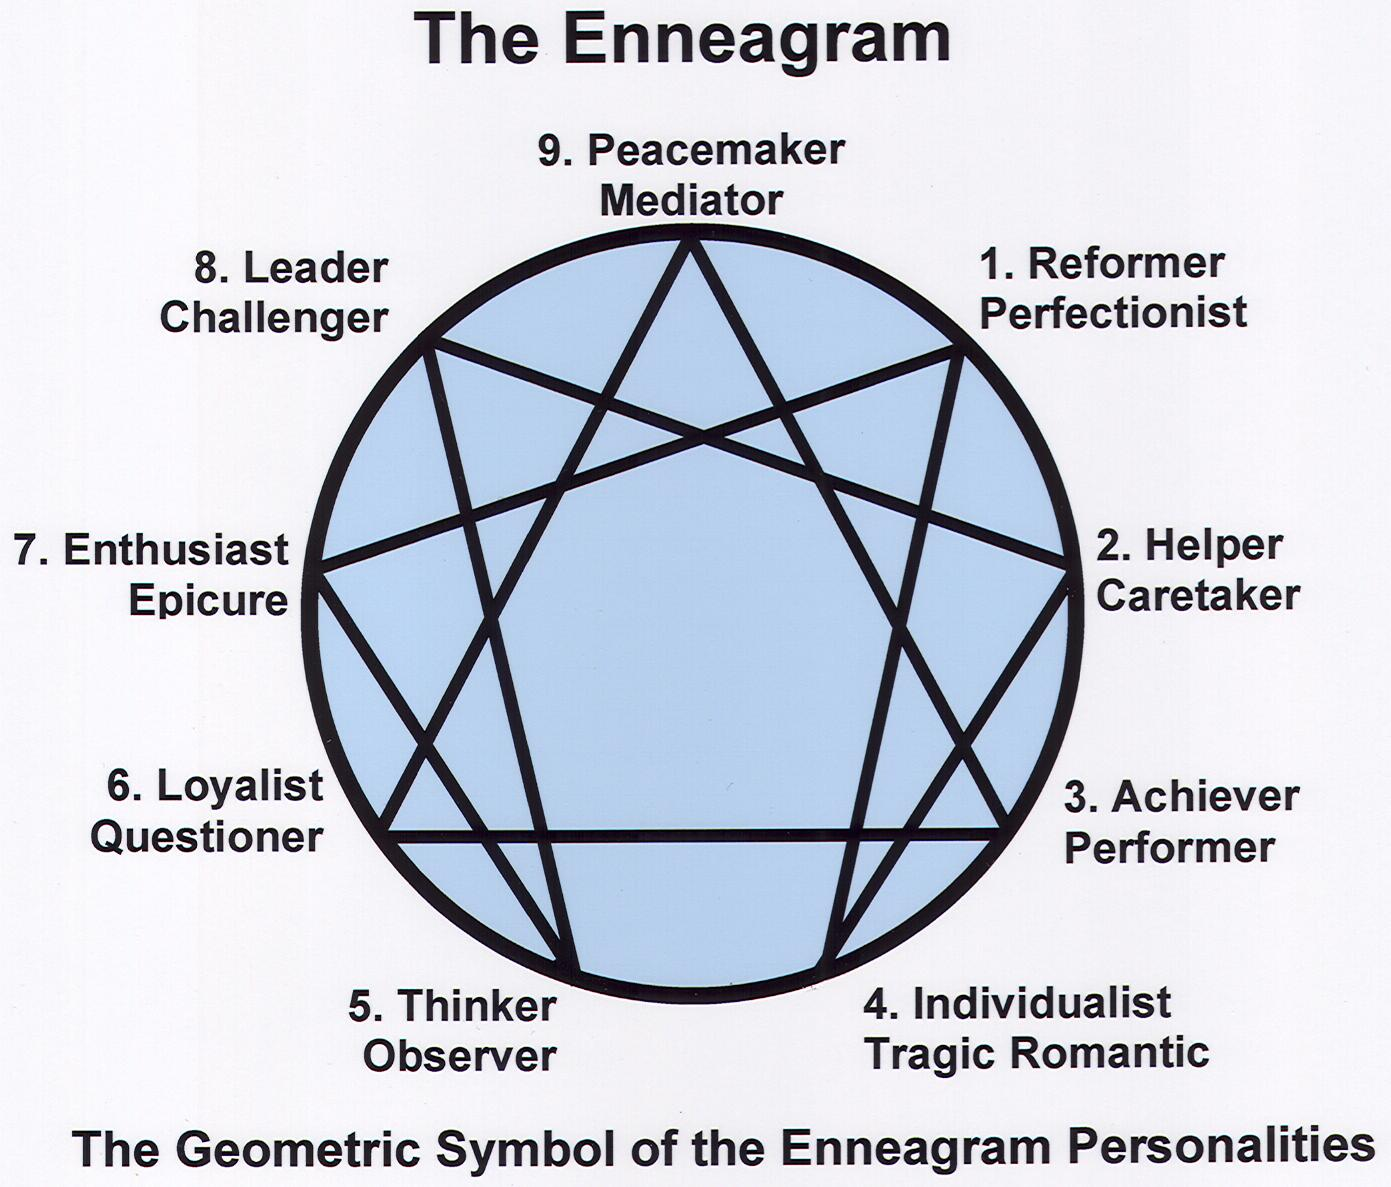 enneagram type 5 dating The enneagram offers great insight into ways your personality traits and personal style affect your love life, so here is dating advice for men and women based on how your enneagram number messes with you in relationships.